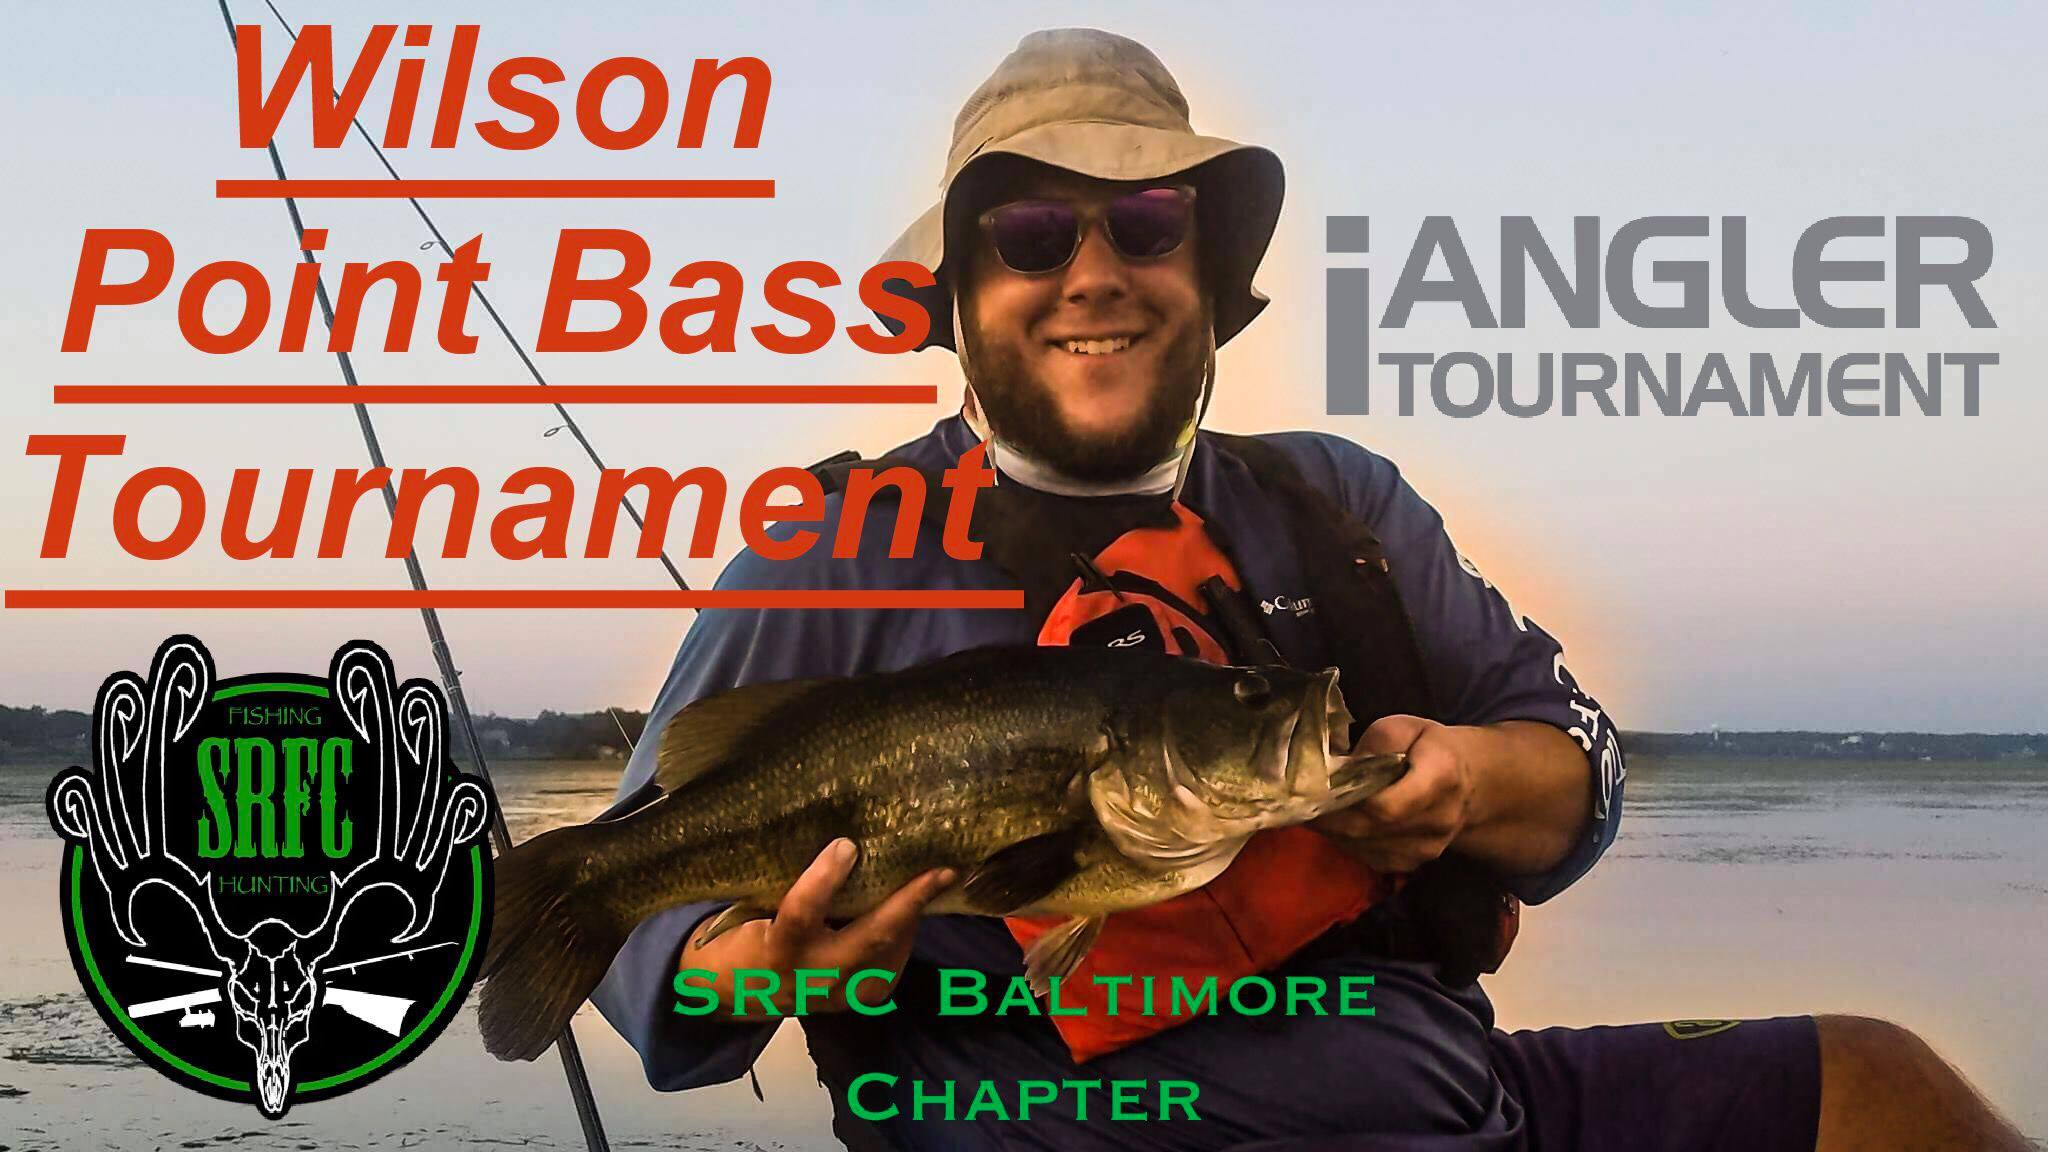 SRFC - 2018 Wilson Point Bass Tournament